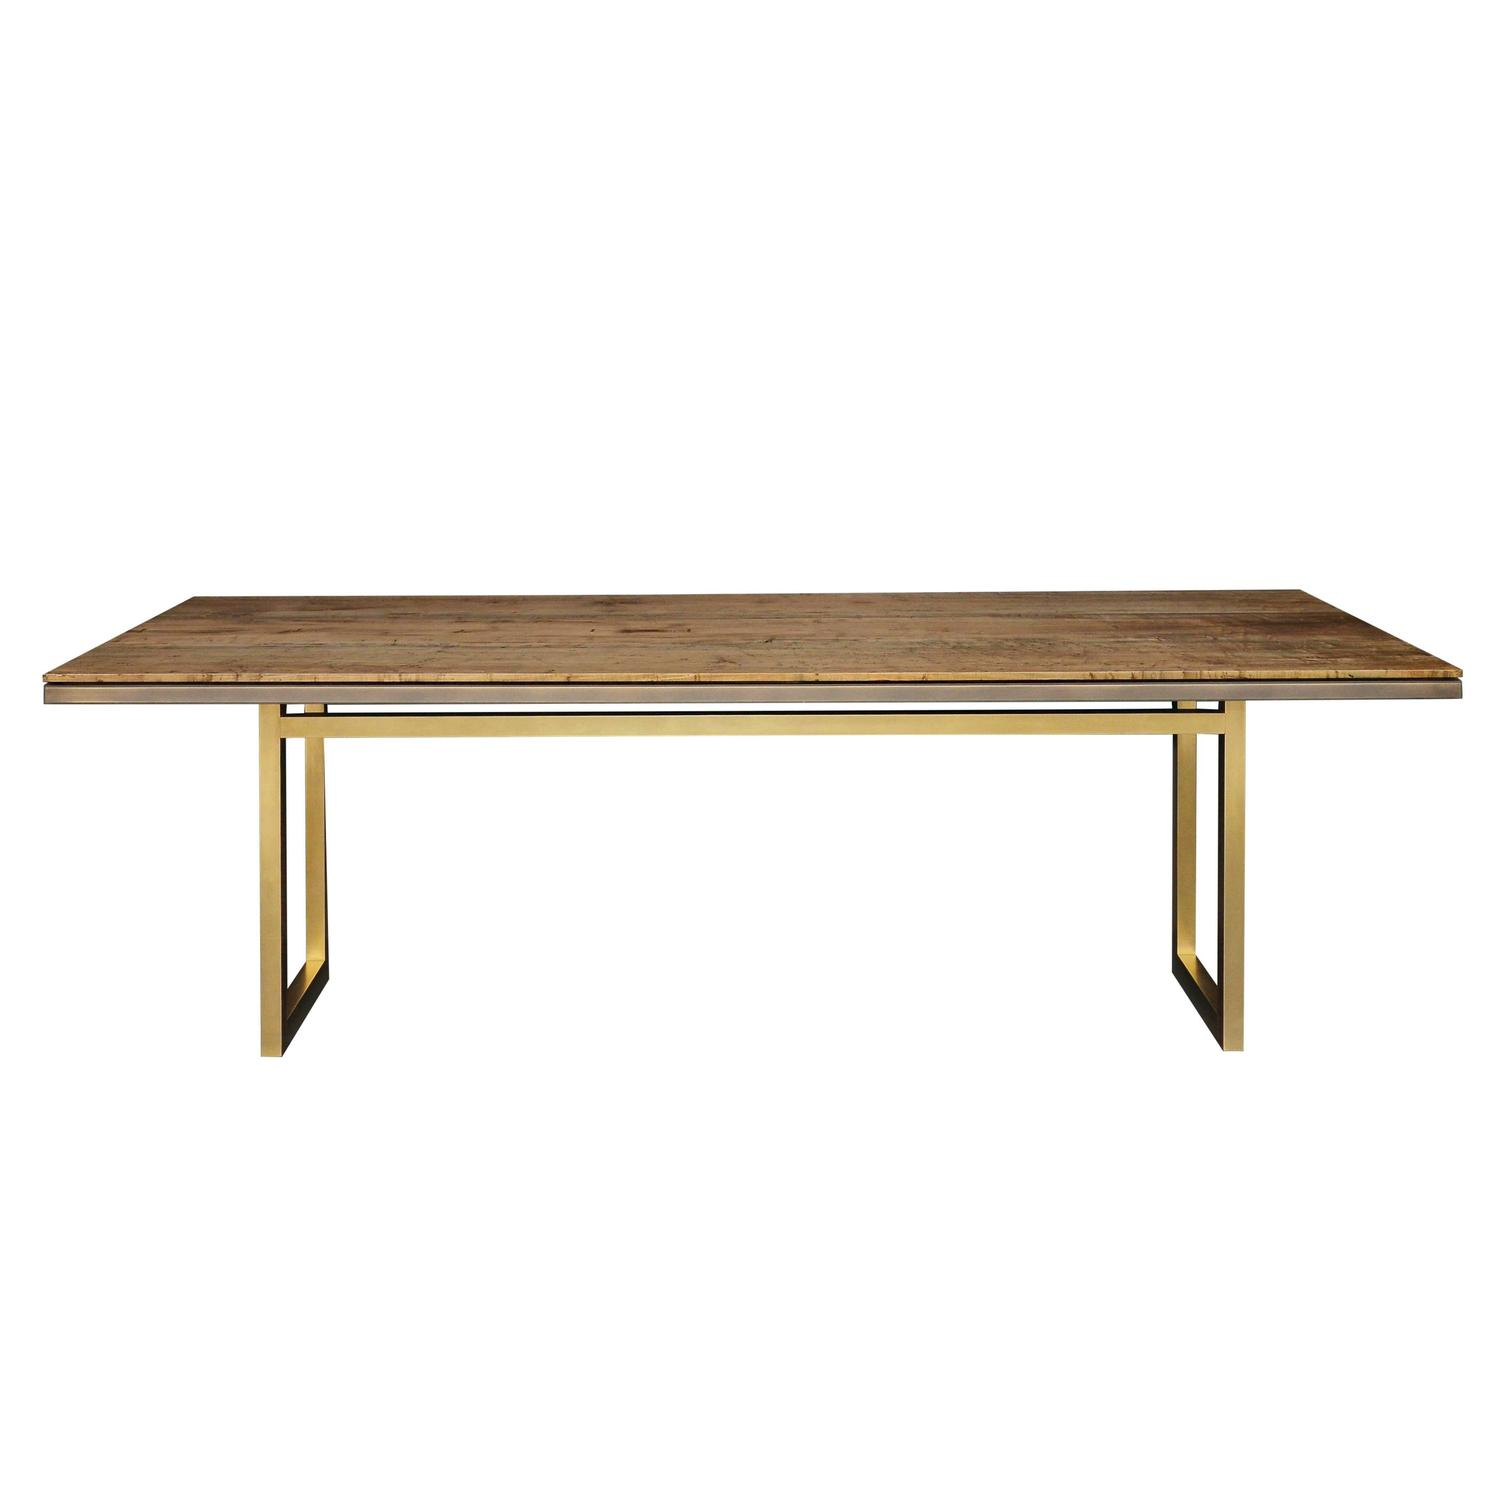 Gotham Dining Table Customizable Wood and Metal For Sale